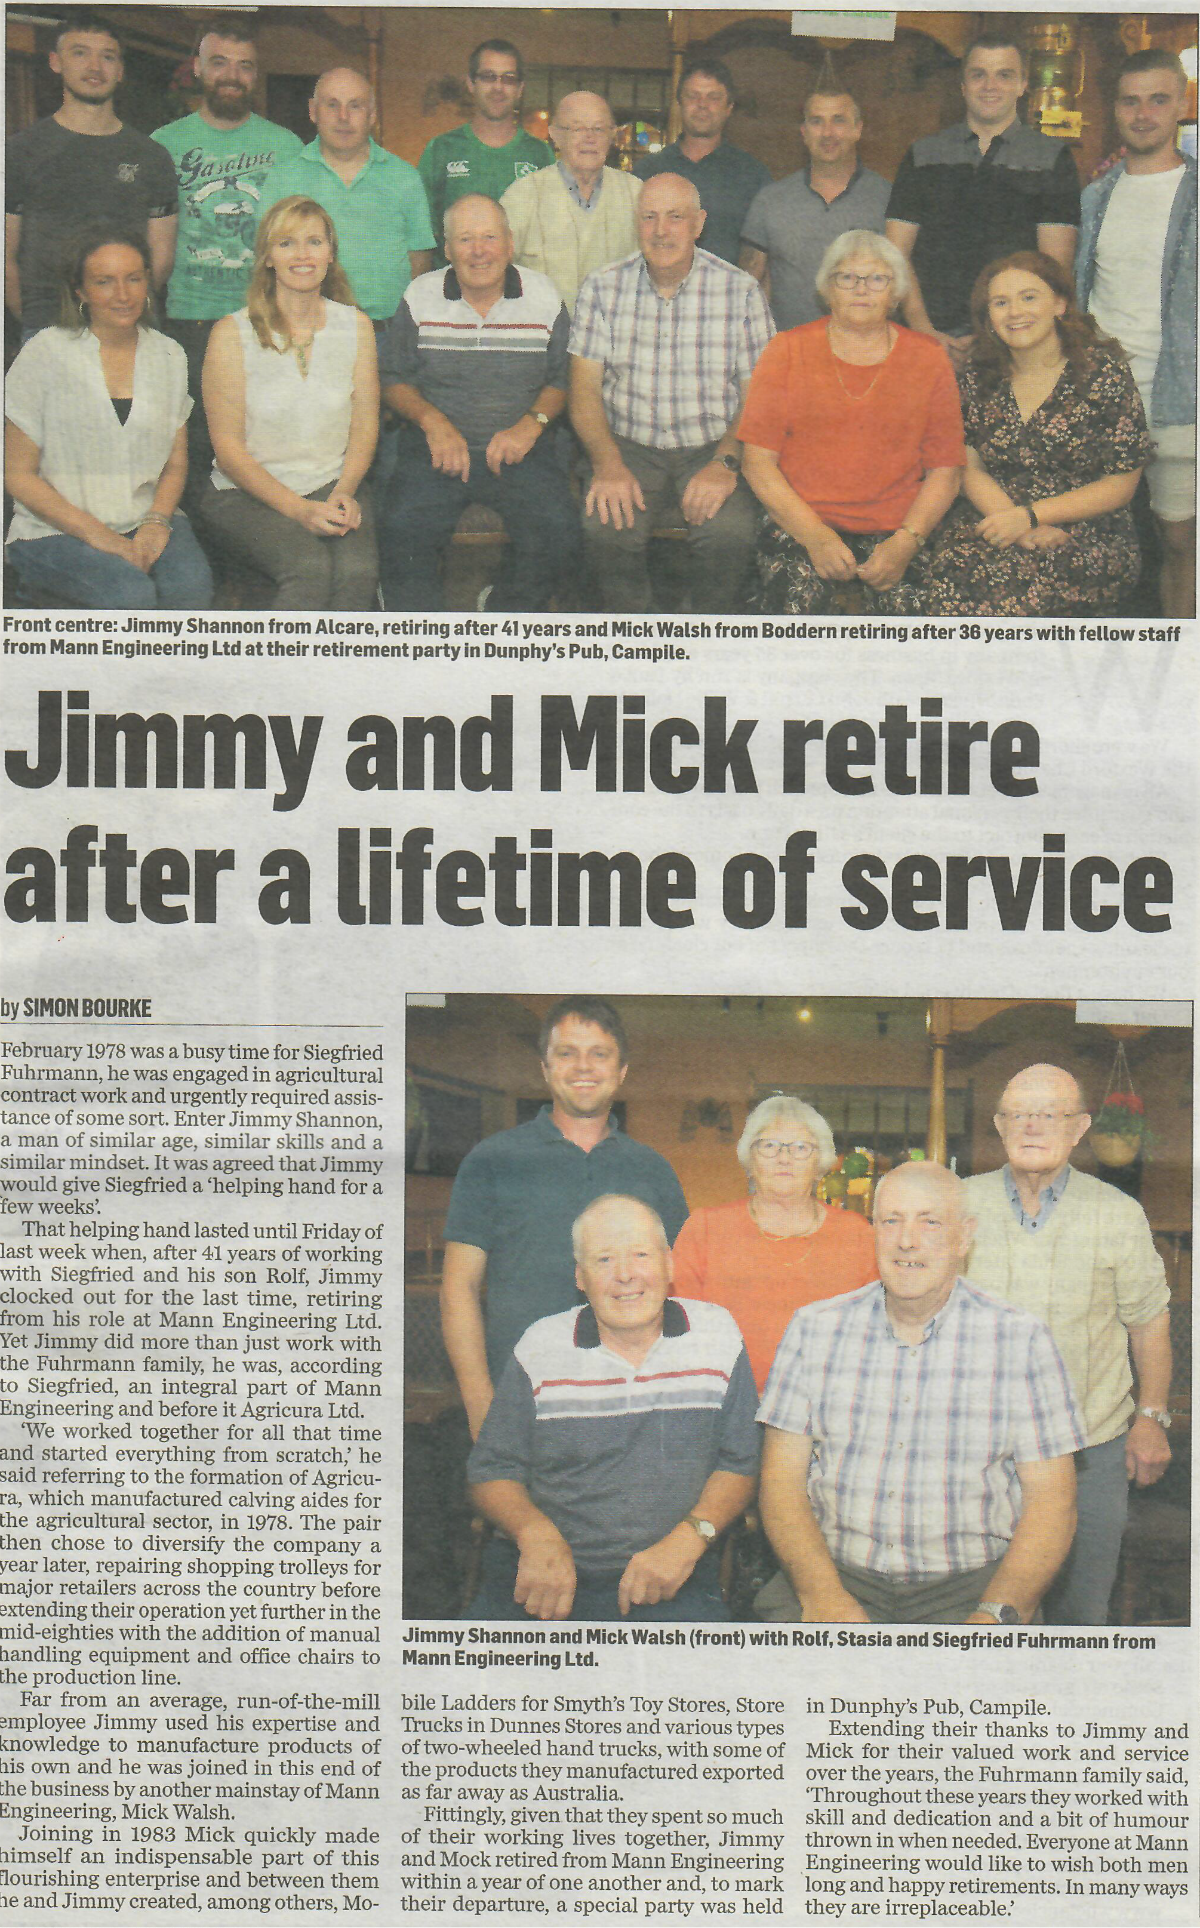 Retirement of Jimmy Shannon & Mick Walsh from Mann Engineering